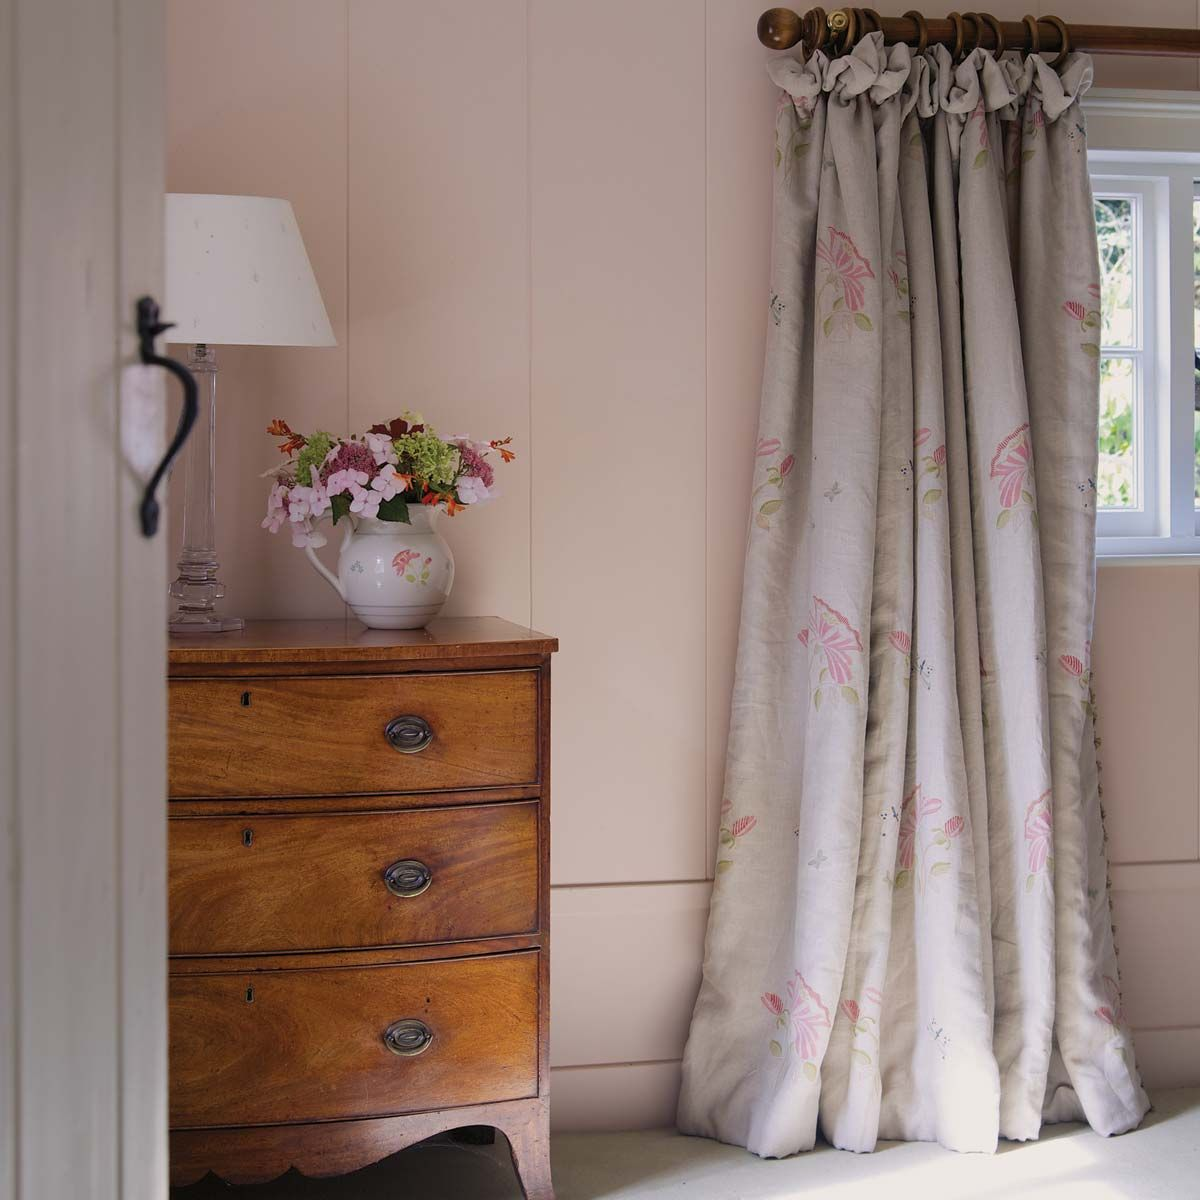 Linen Pink Rose   Susie Watson Designs   I love this simple relaxed Country  Style   Blinds CurtainsBedroom. Linen Pink Rose   Susie Watson Designs   I love this simple